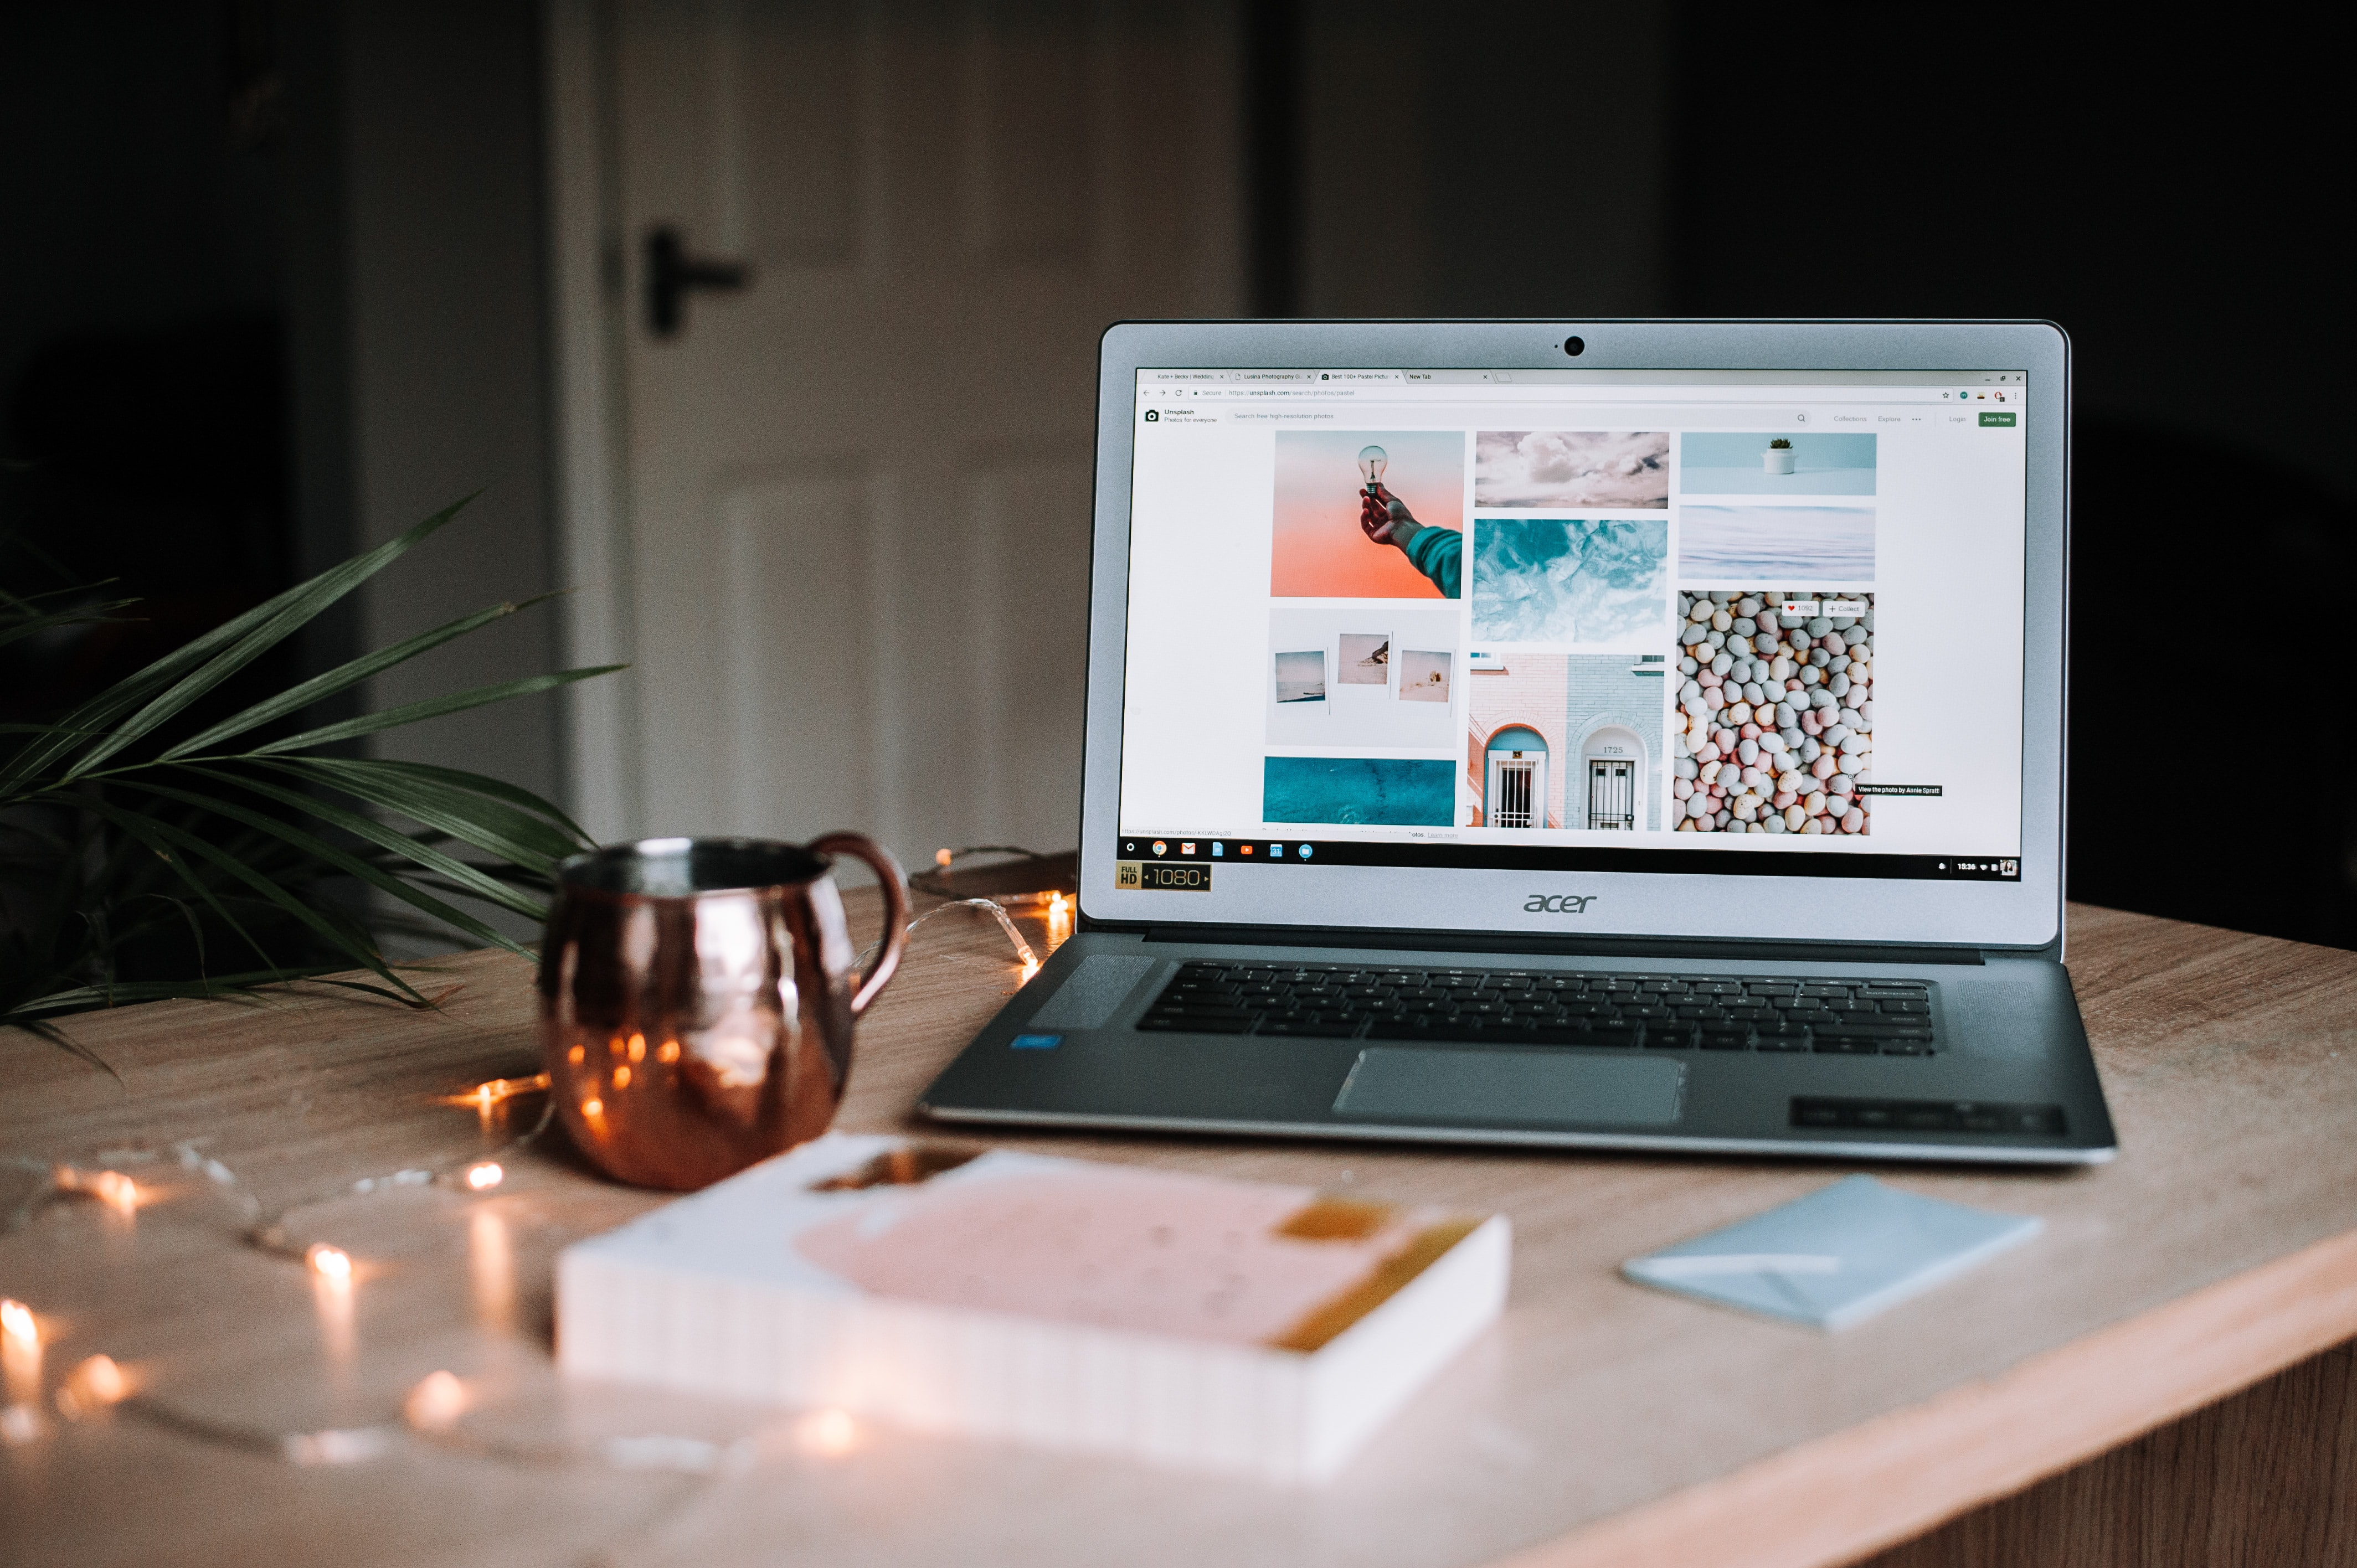 12 Useful Tips on How to Work From Home Effectively